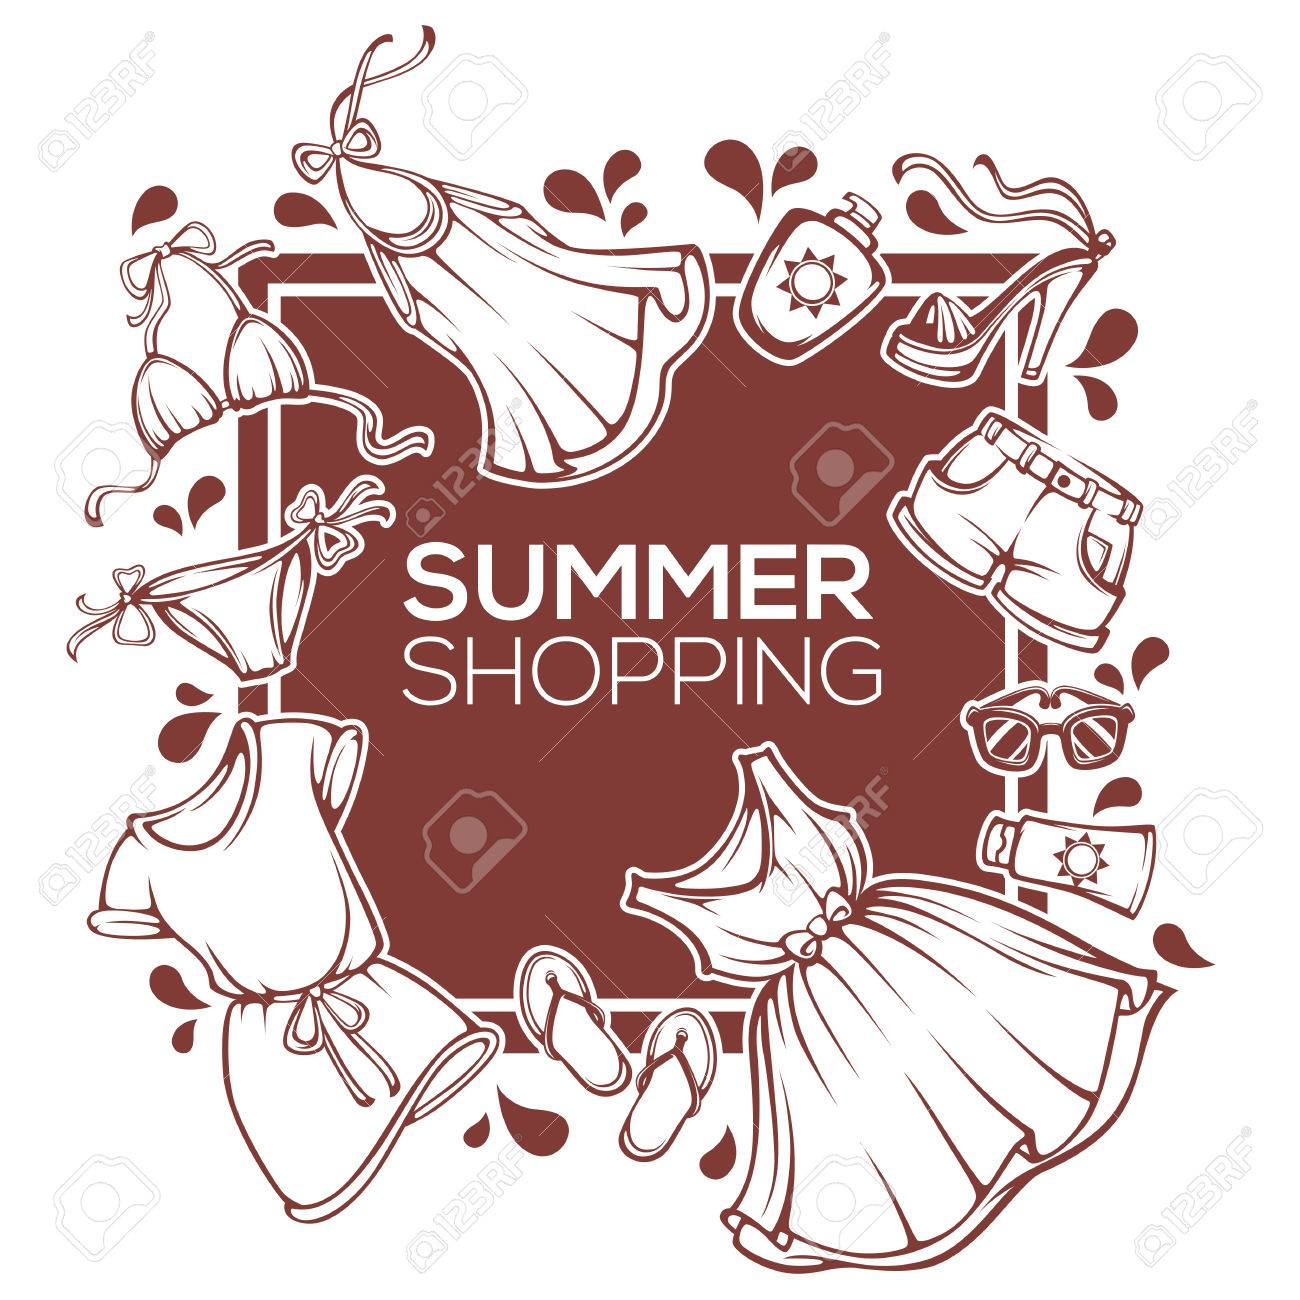 Summer Shopping Vector Fashion Design Template With Clothes Accessories Shoes And Swimsuit Stock